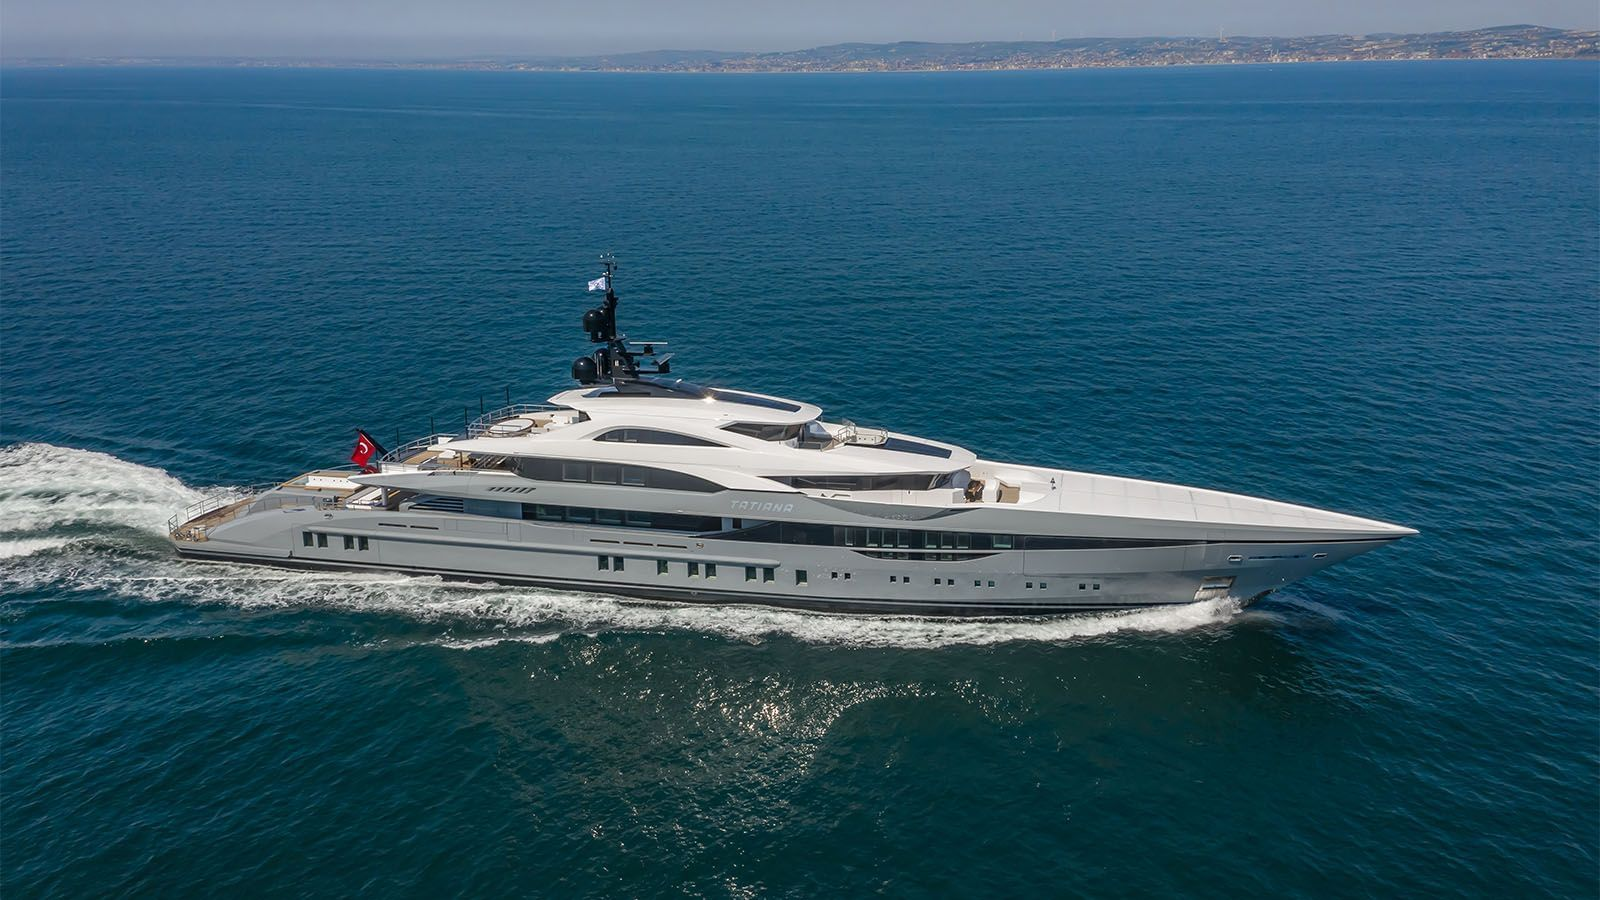 More than 150 Luxury Yachts for Charter / Mega Yacht Charter by IYC